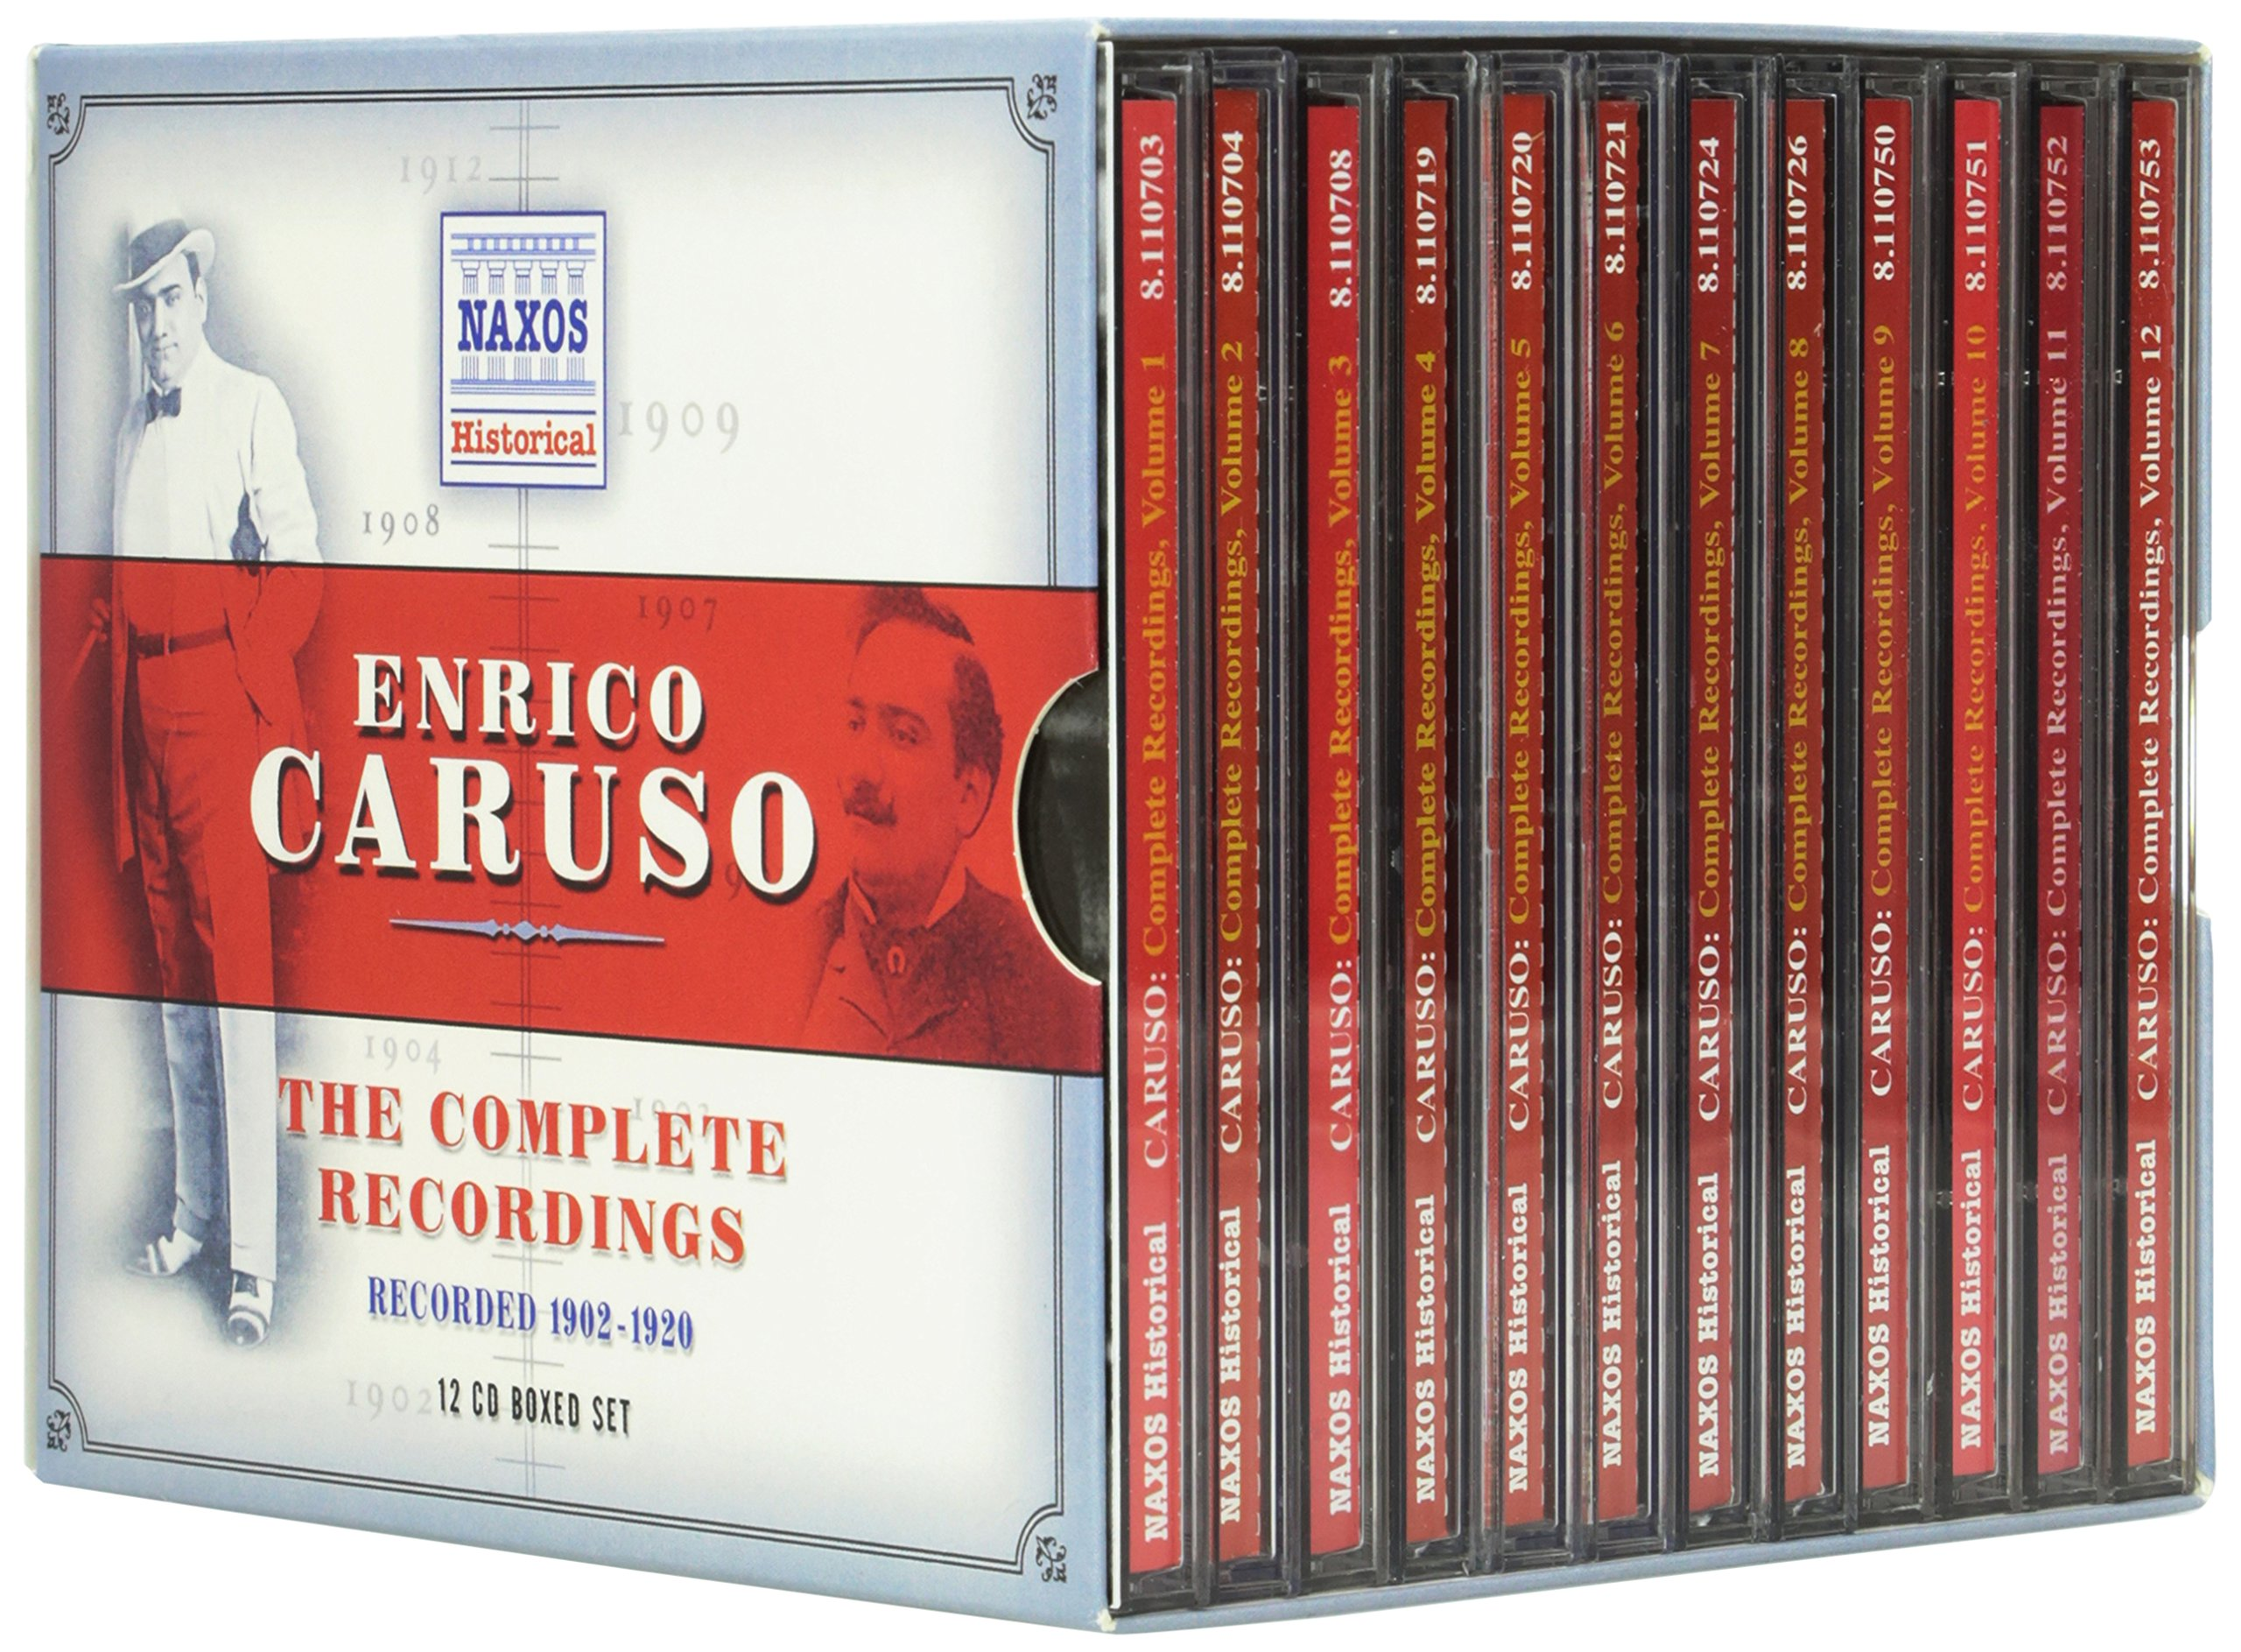 Enrico Caruso: The Complete Recordings by NAXOS HISTORICAL.